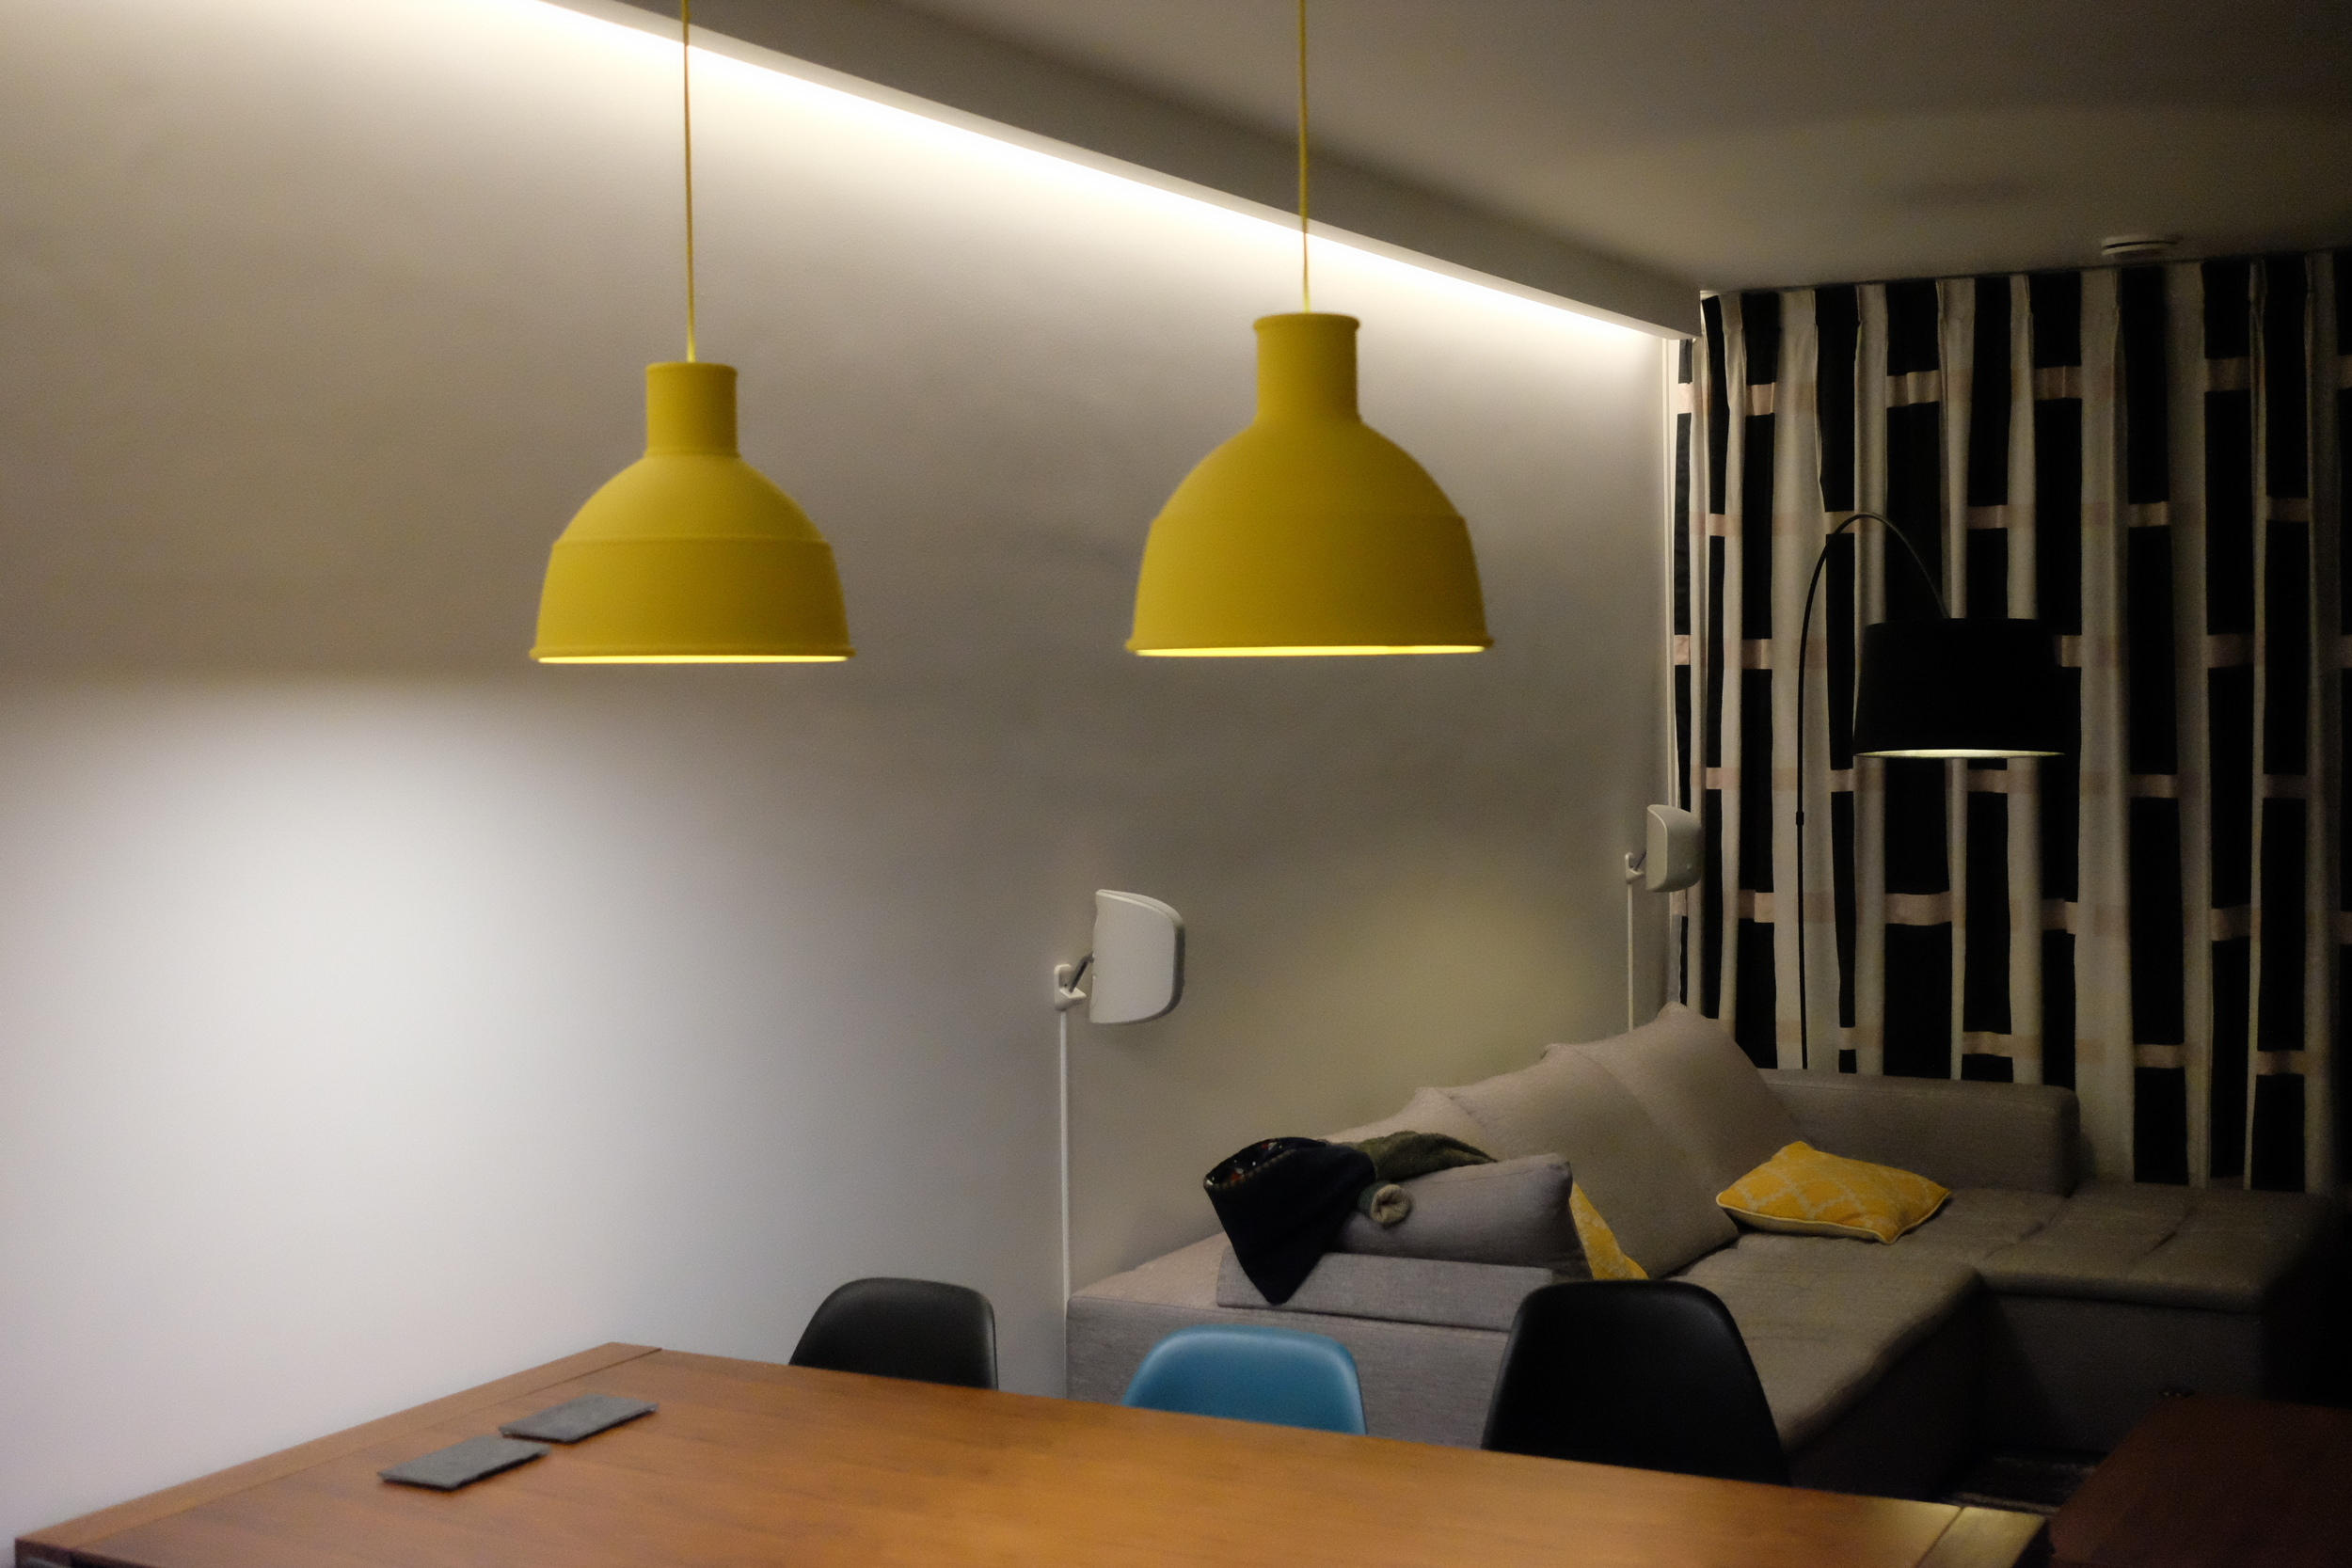 At full power the glow effect really brighten up the room - Photograph Philippe Regnier